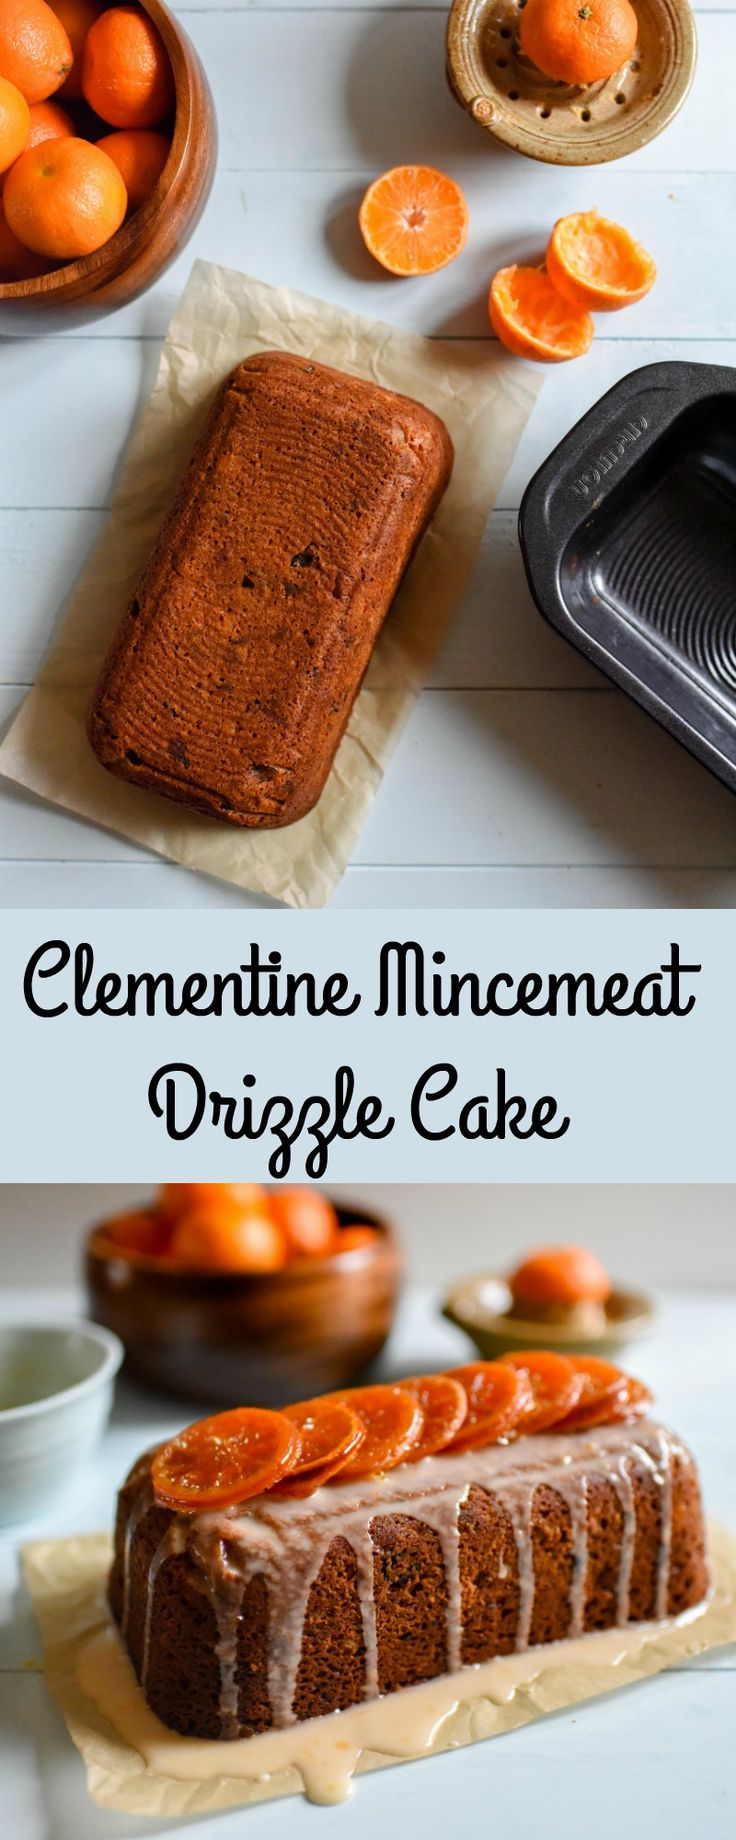 Clementine & Mincemeat Drizzle Cake - Patisserie Makes Perfect